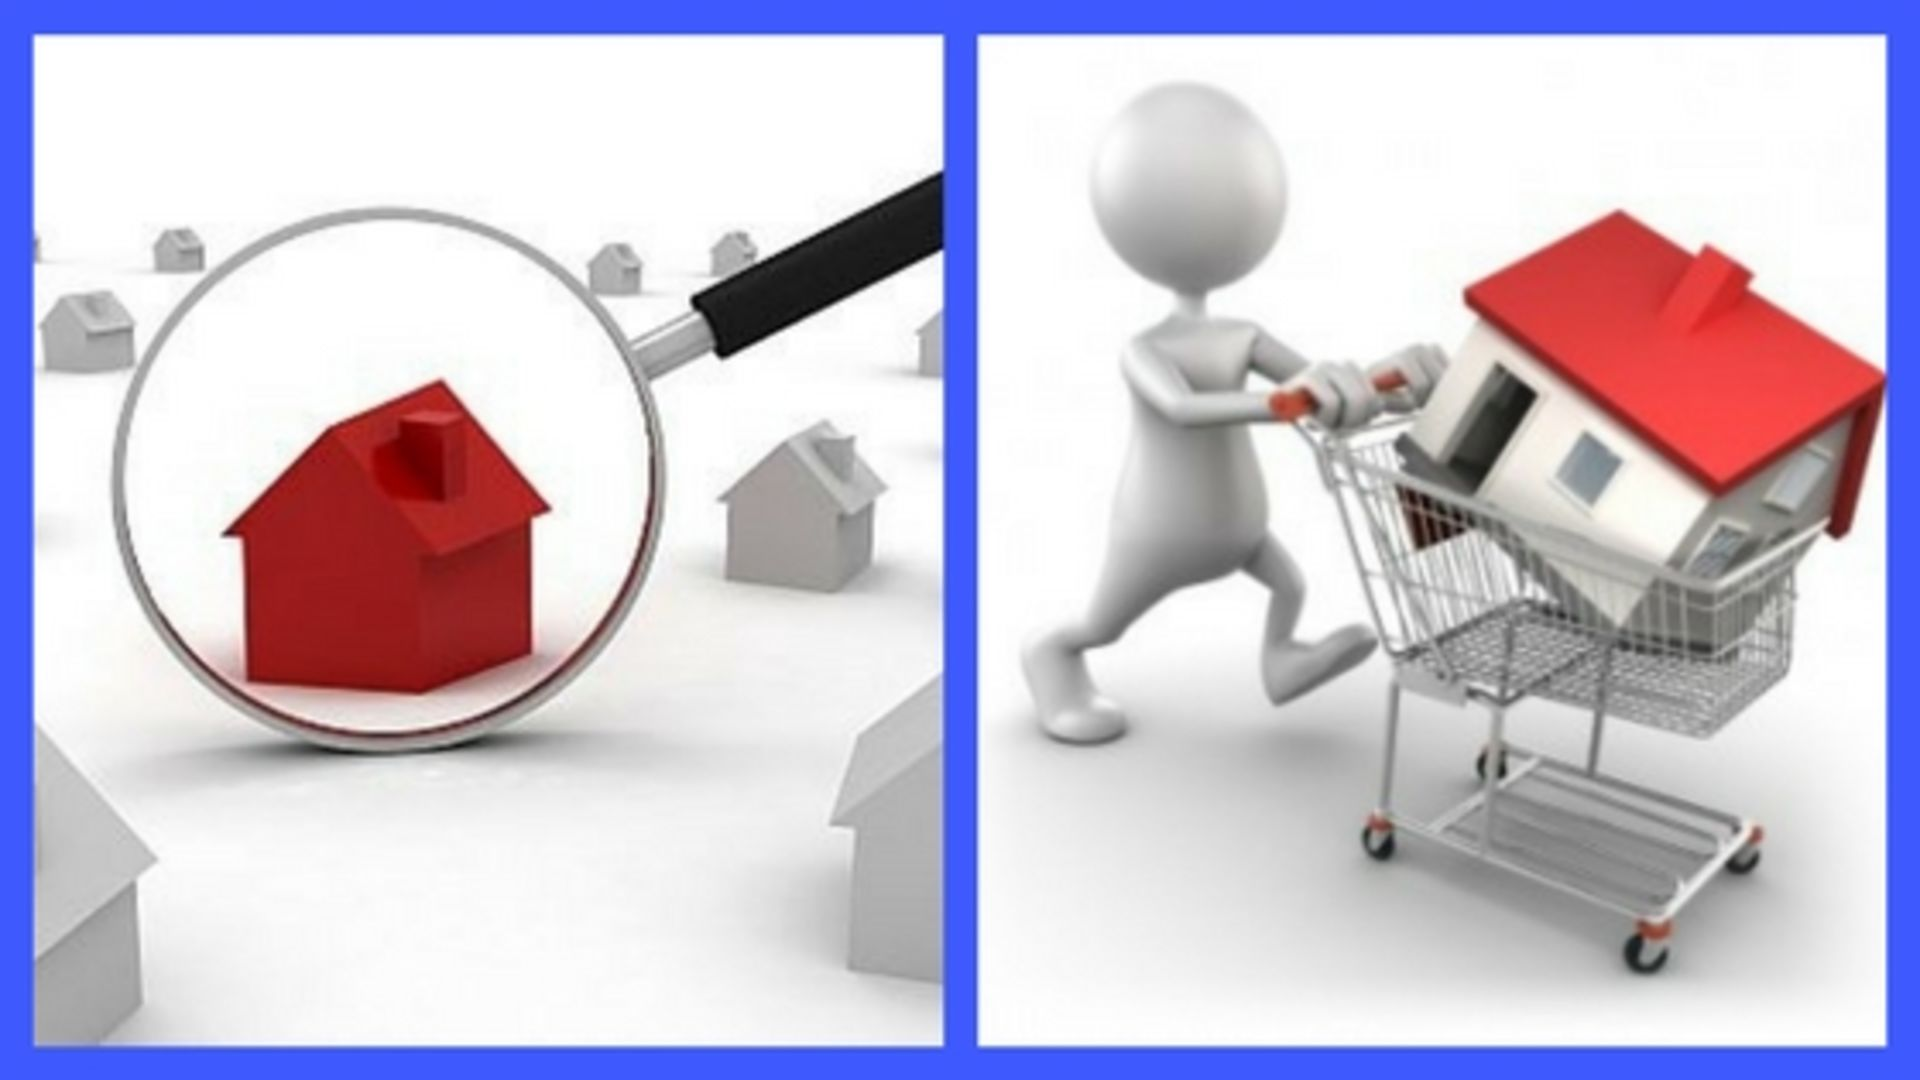 Real Estate Buzzwords: Buying, Selling, Who's Who